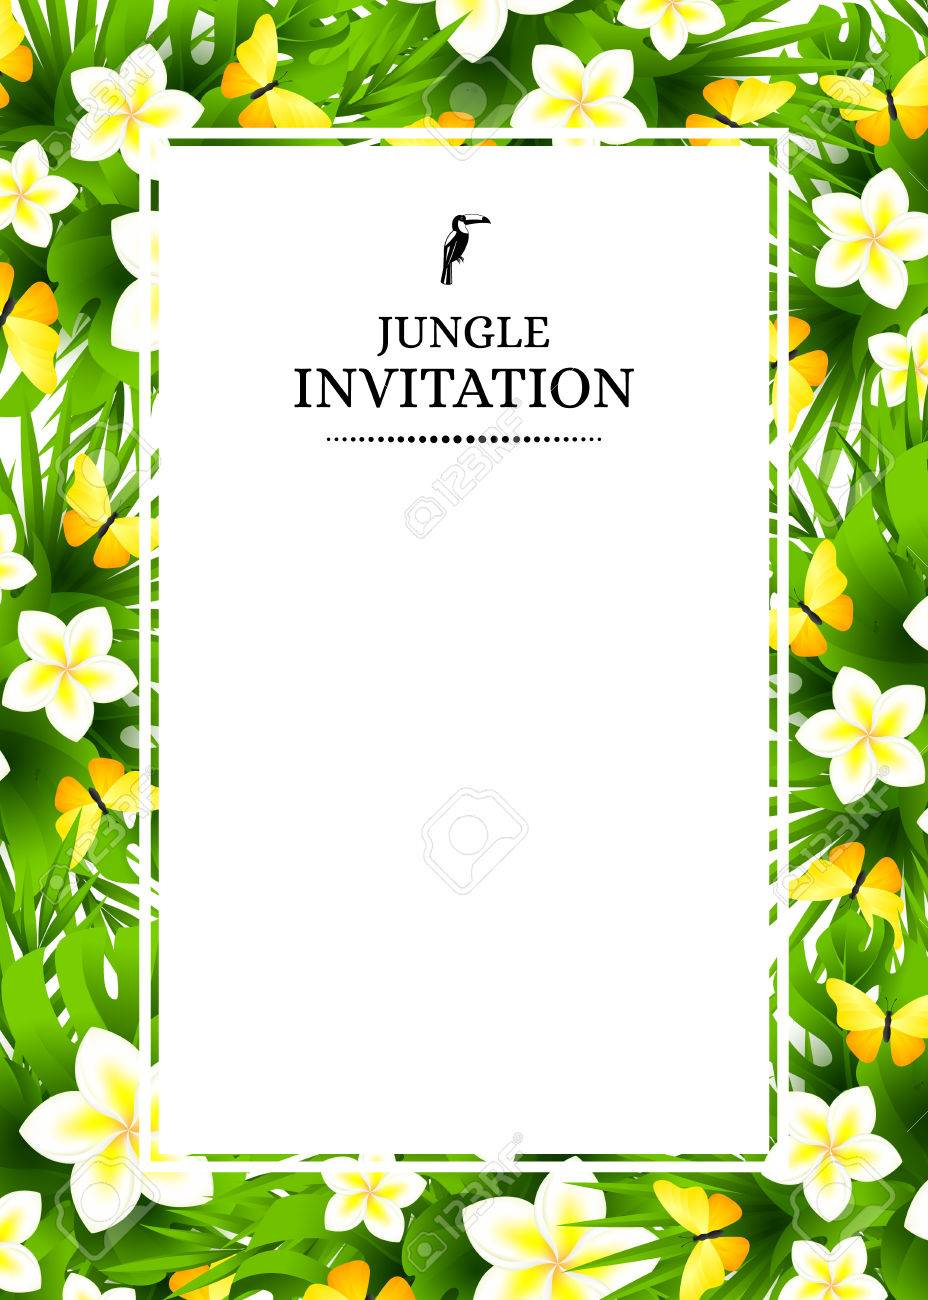 Tropical hawaiian background with jungle palm tree leaves exotic banco de imagens tropical hawaiian background with jungle palm tree leaves exotic flowers and yellow butterflies vertical vector invitation banners with stopboris Choice Image